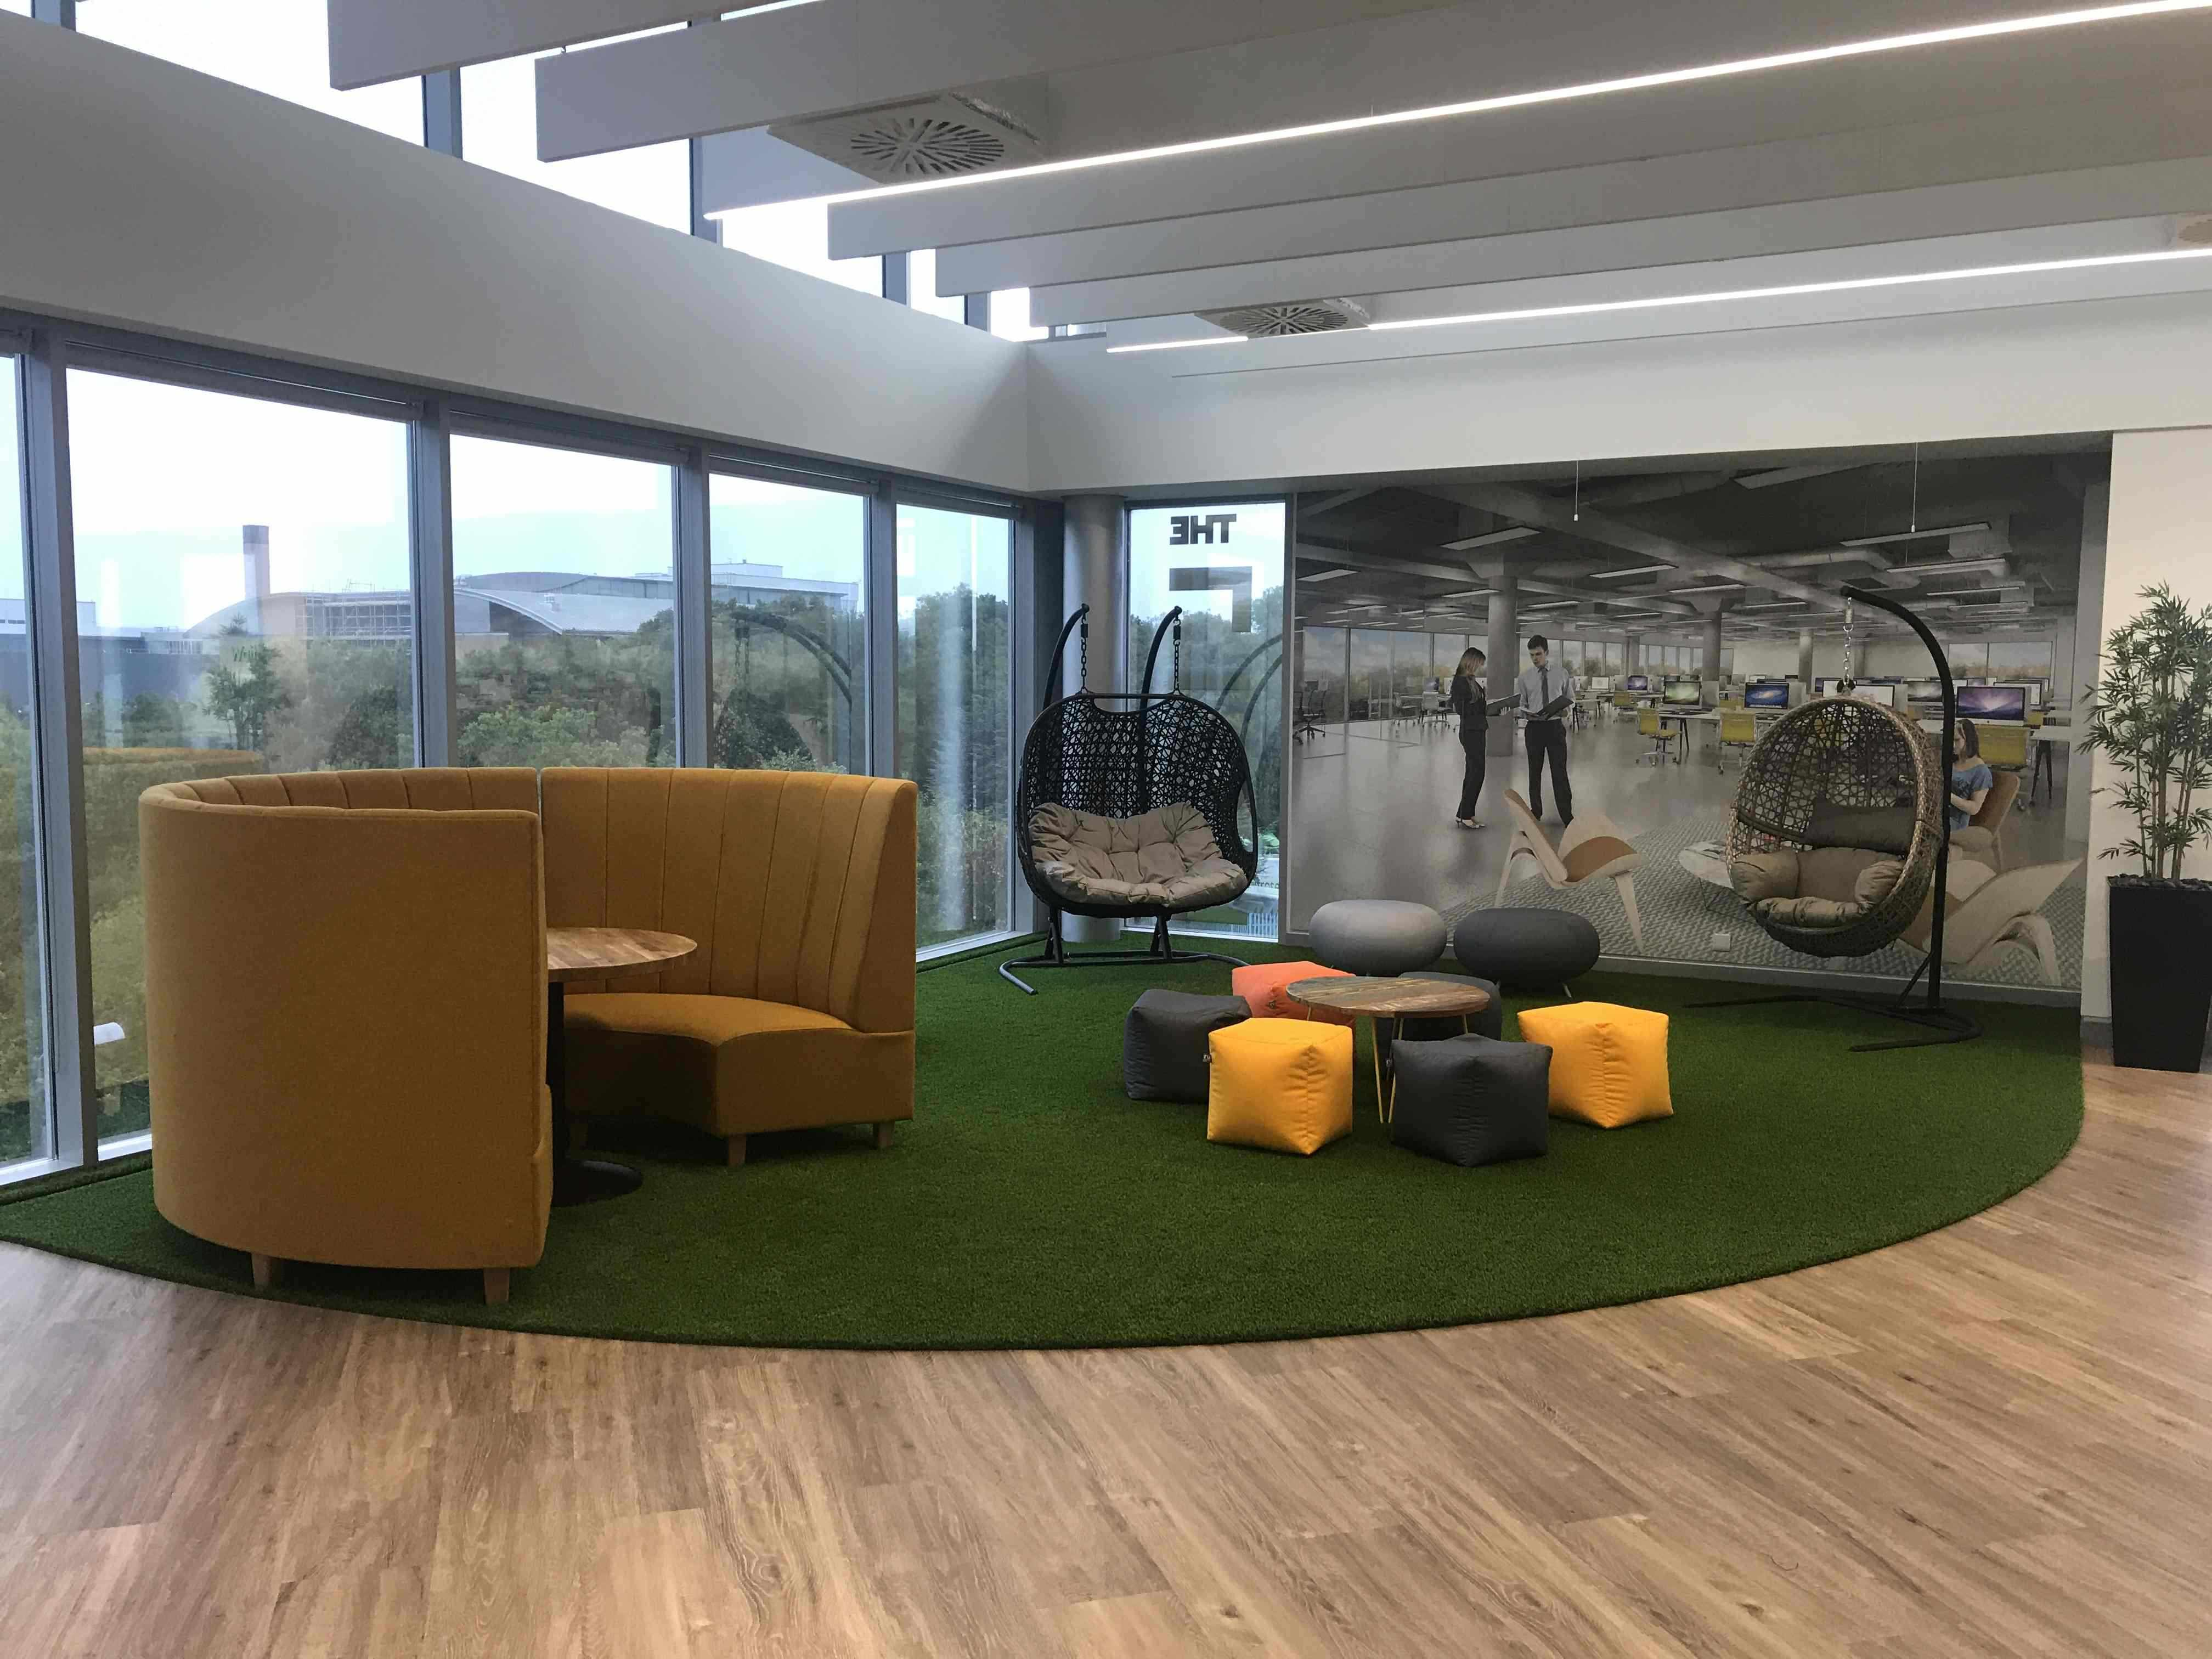 relaxed breakout area to help boost workplace wellbeing